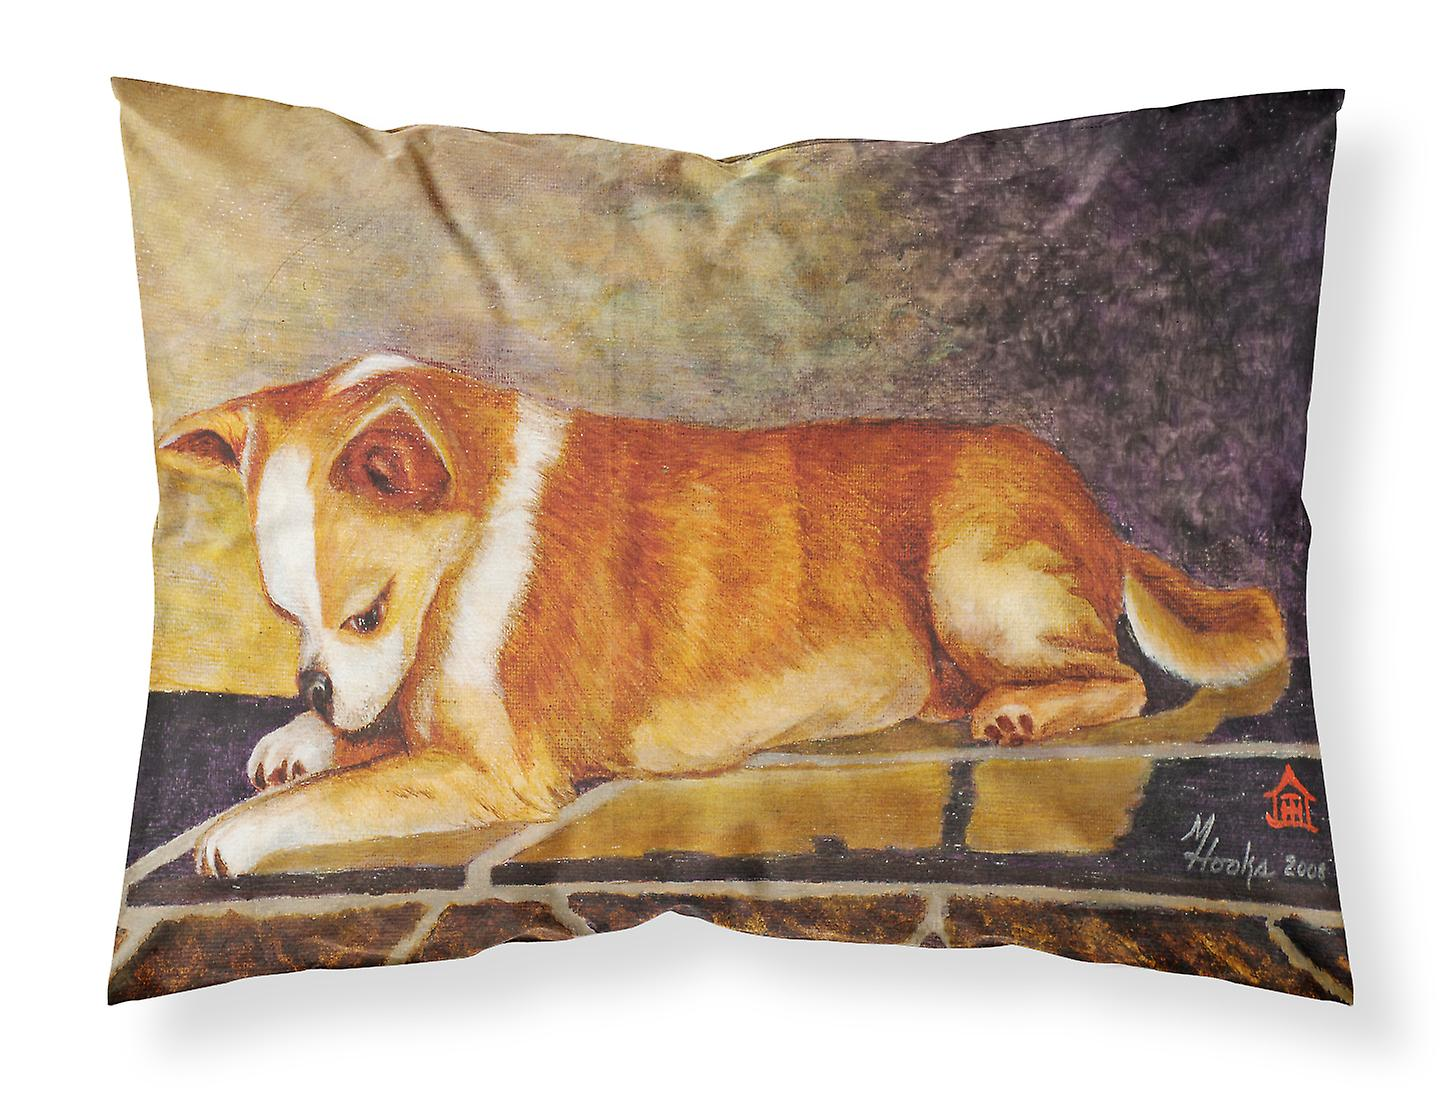 Chihuahua Me Fabric I See Standard Pillowcase vfyYgb76